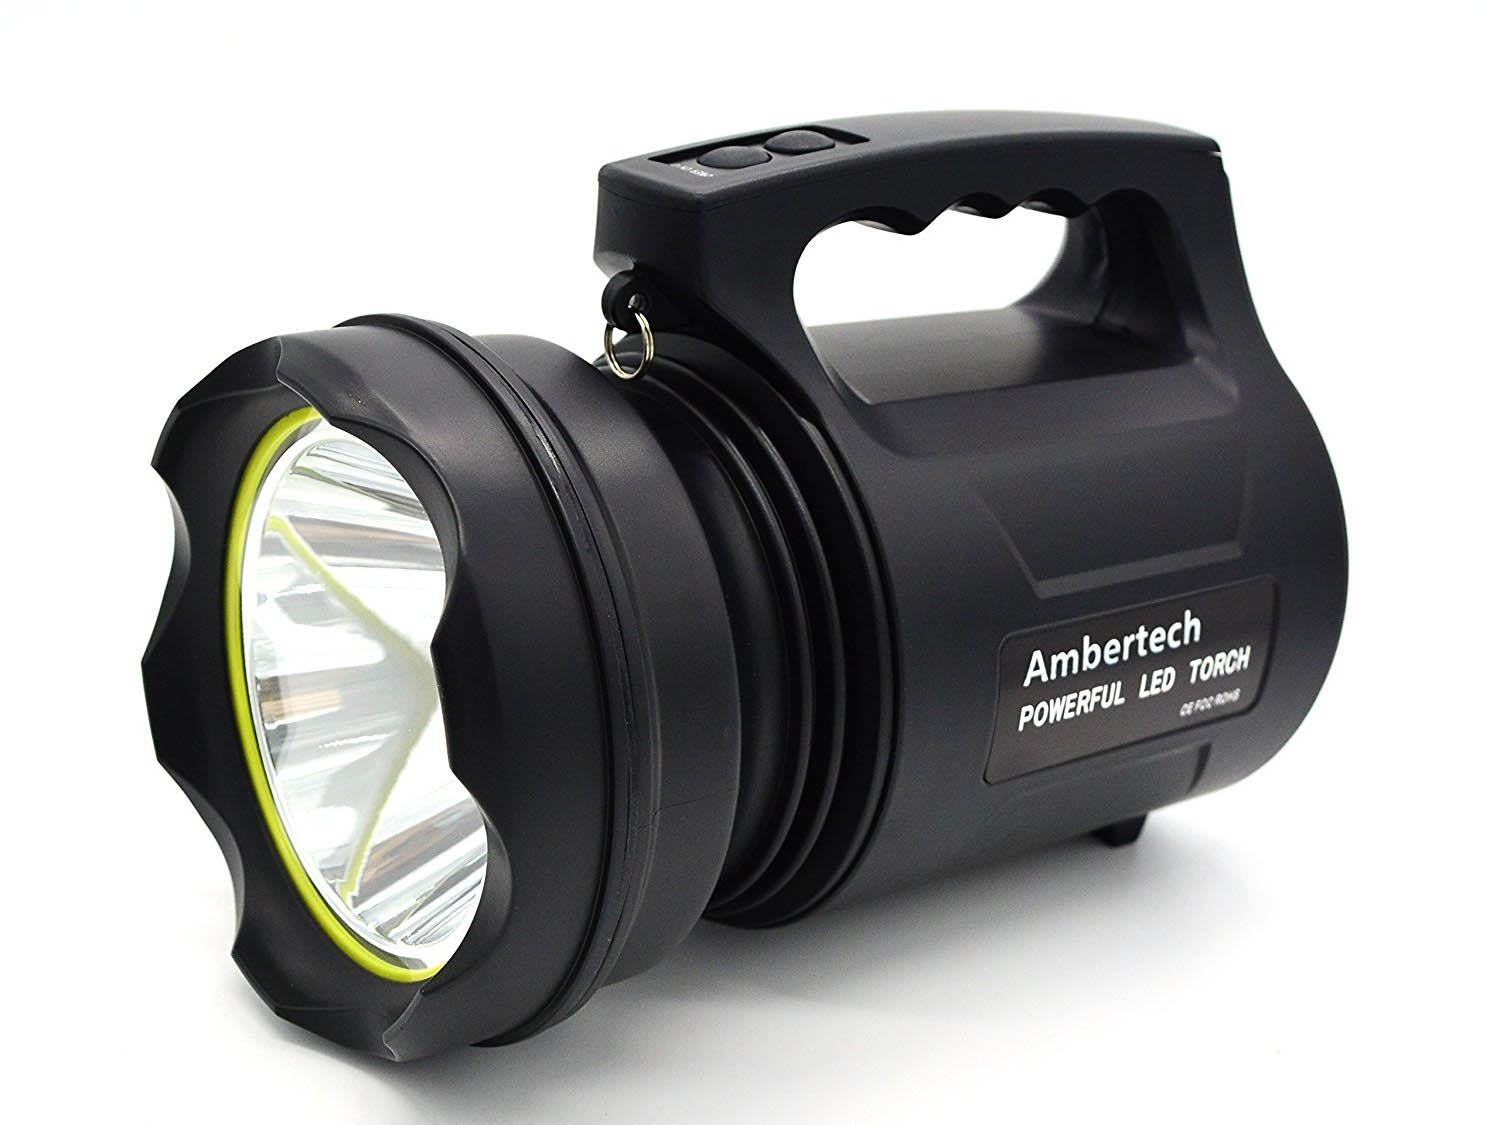 8 Best Torches The Independent Single Cell Led Flashlight Ambertech 10000 Torch 4599 Amazon